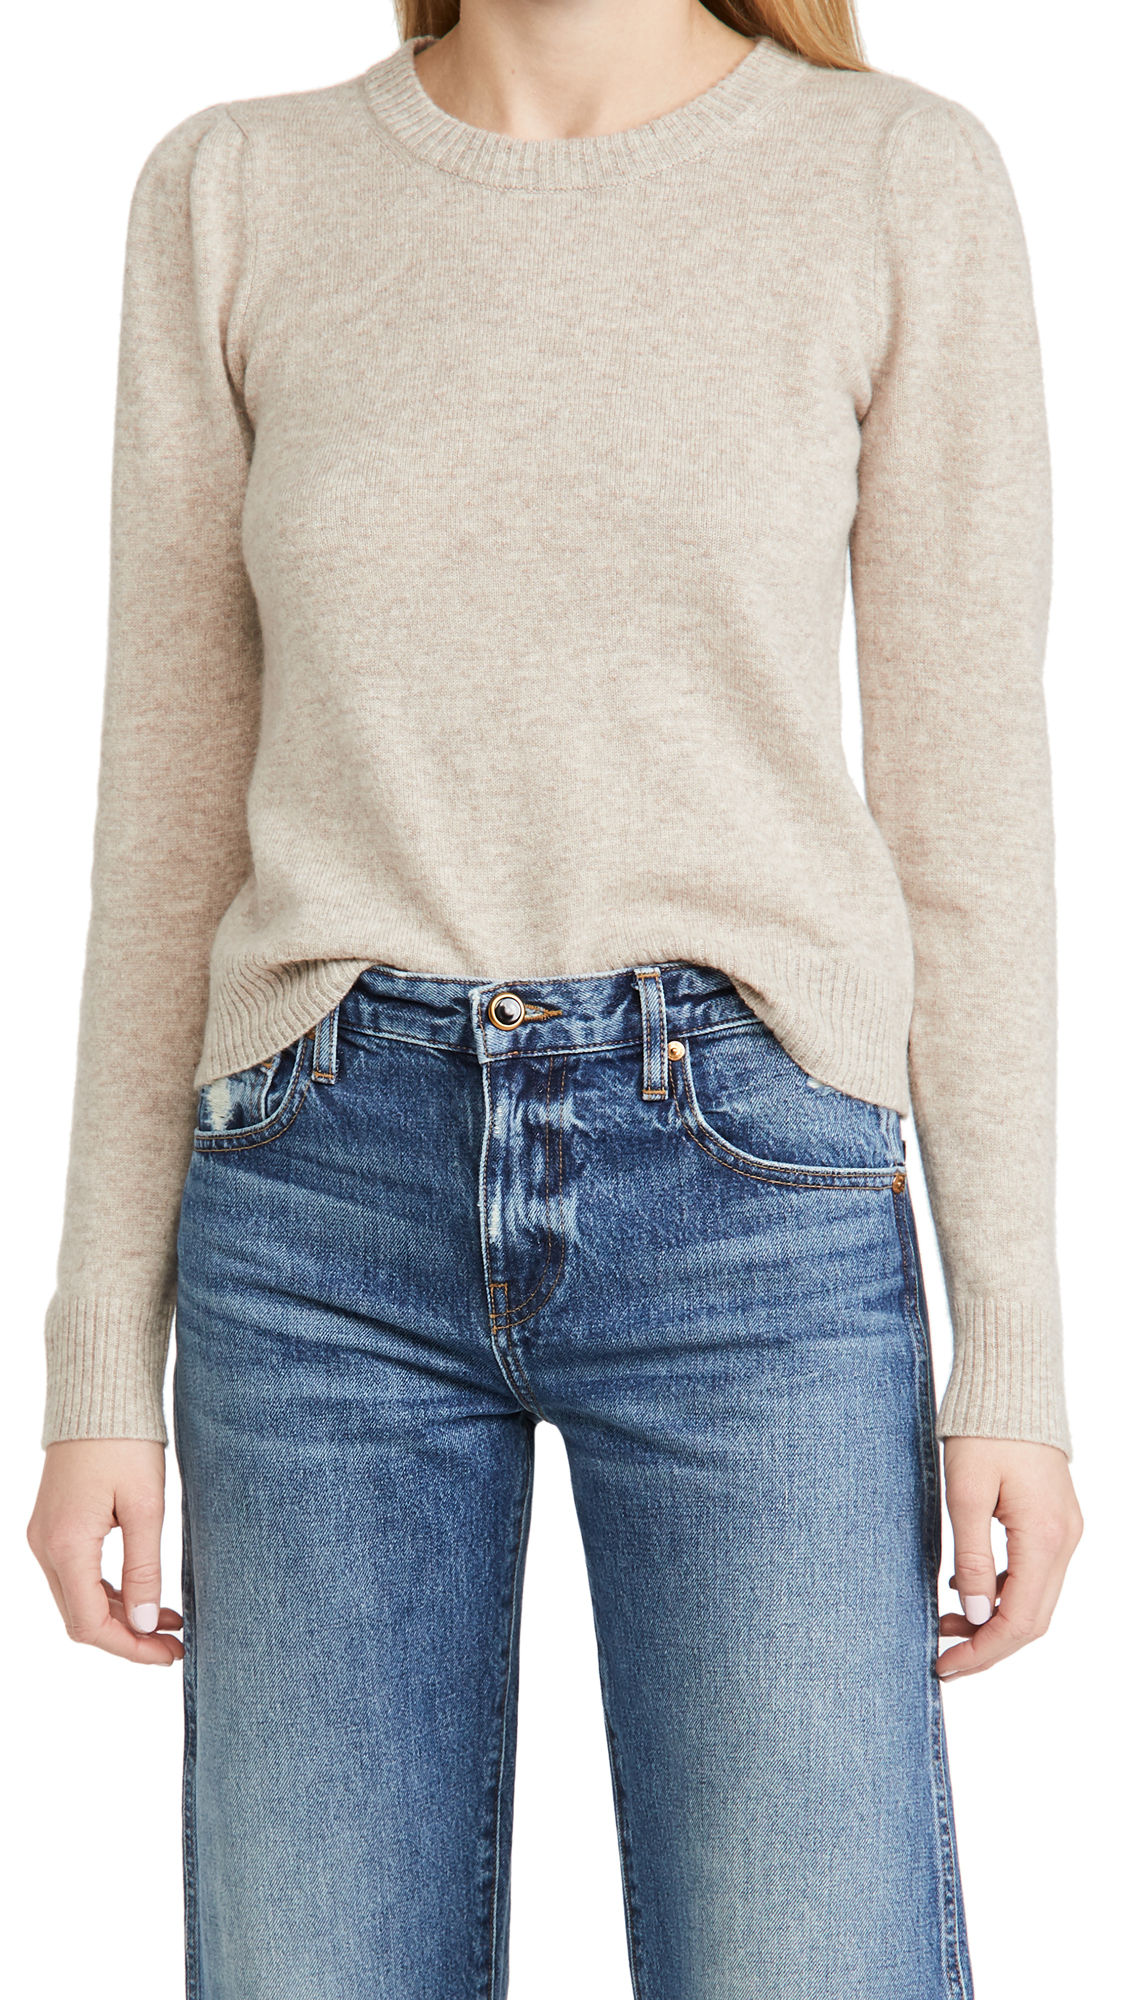 Reformation Cashmere Crew Puff Sleeve Sweater